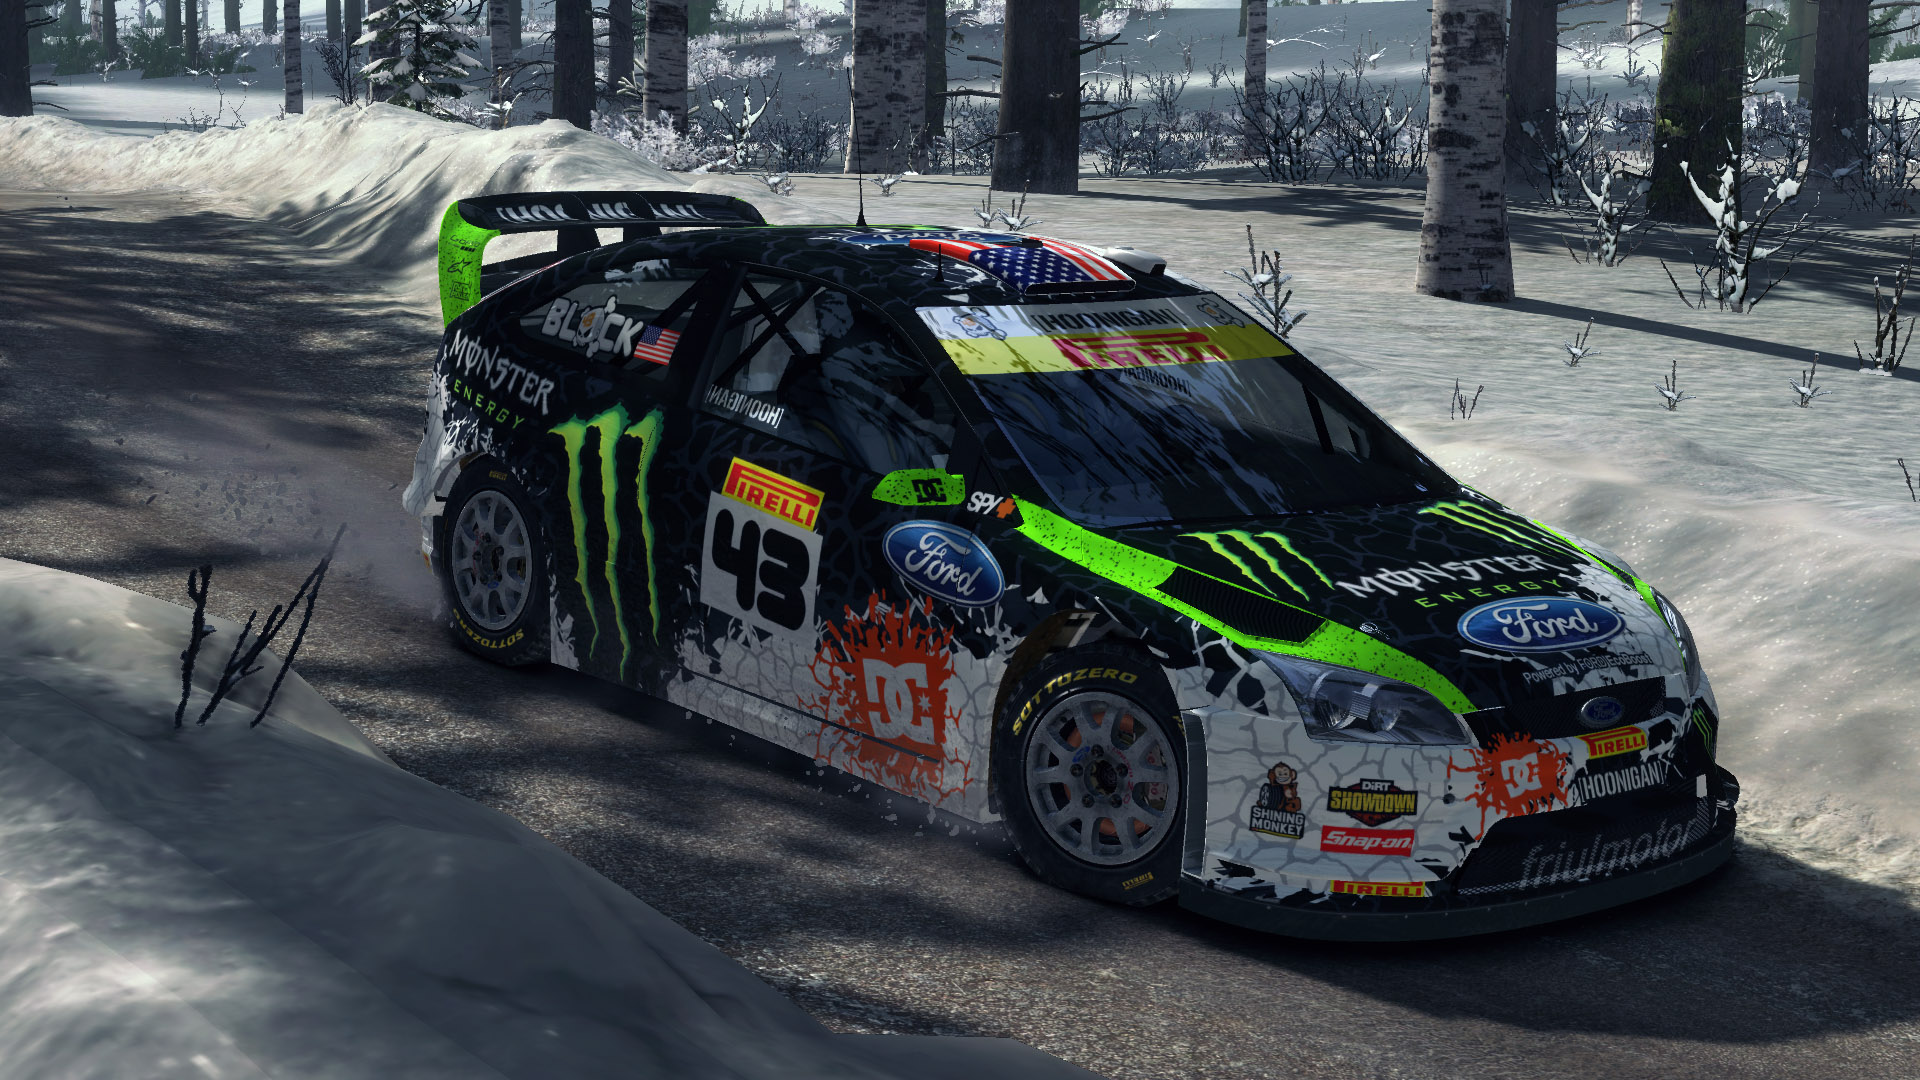 Ken_Block_in_Russia_09.jpg